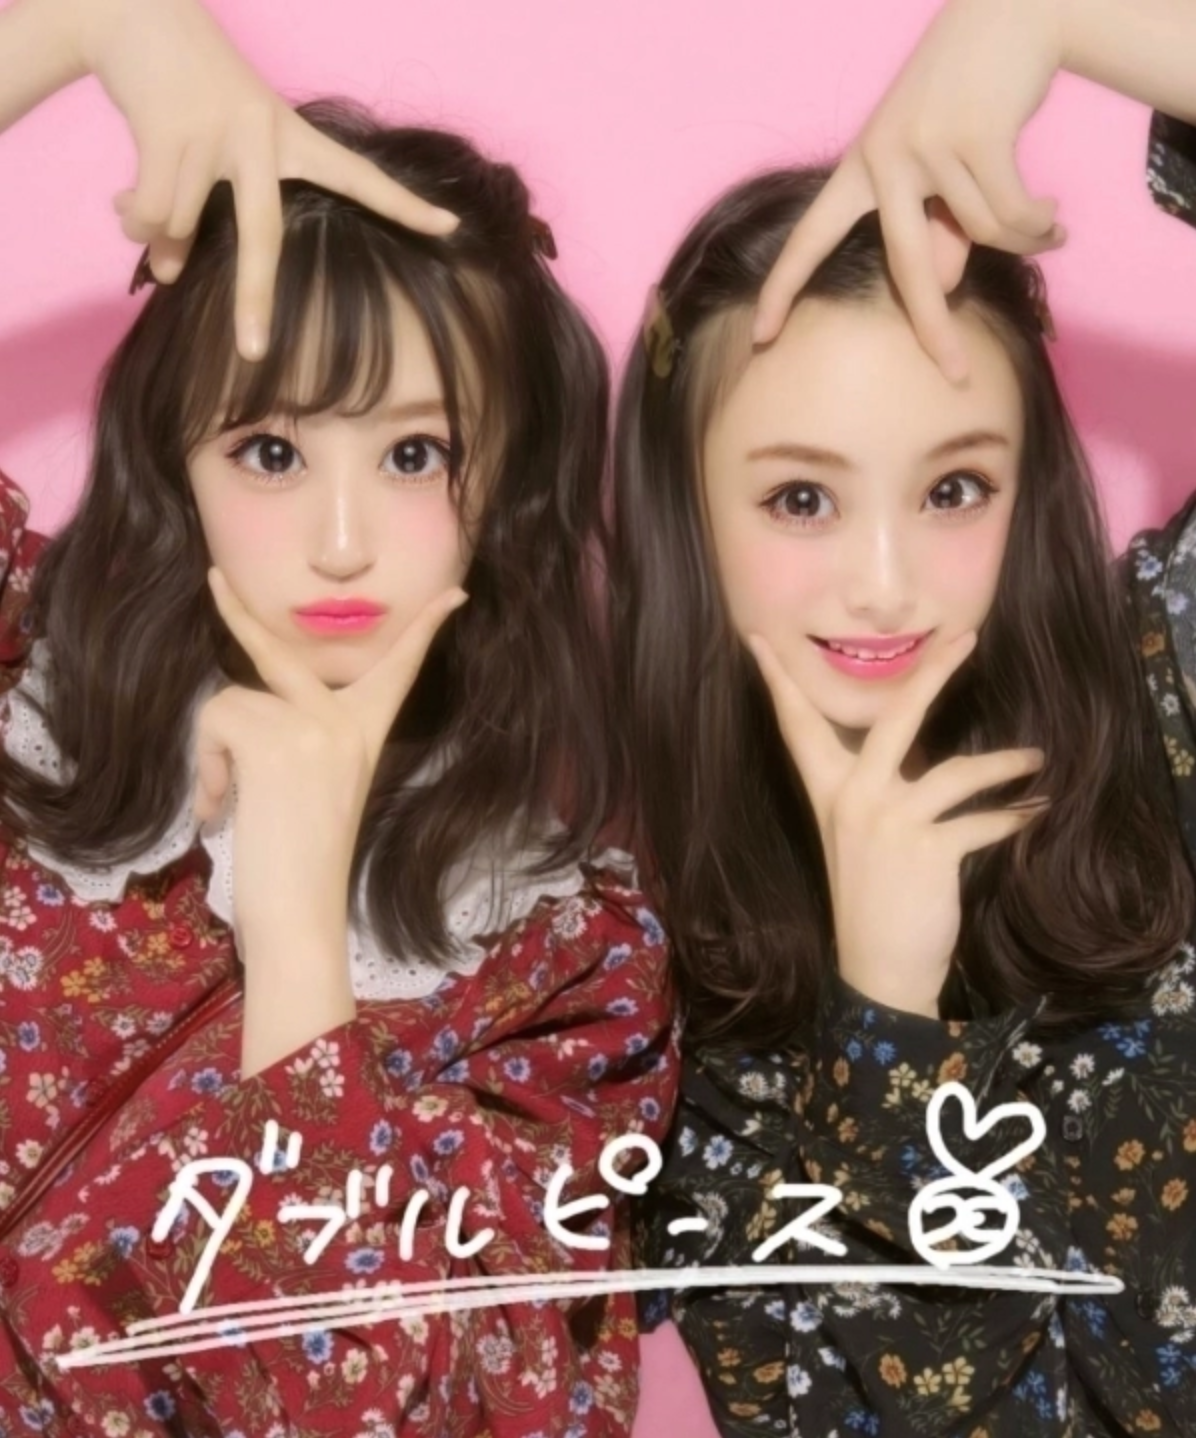 Japanese Purikura Poses - Double Peace Sign